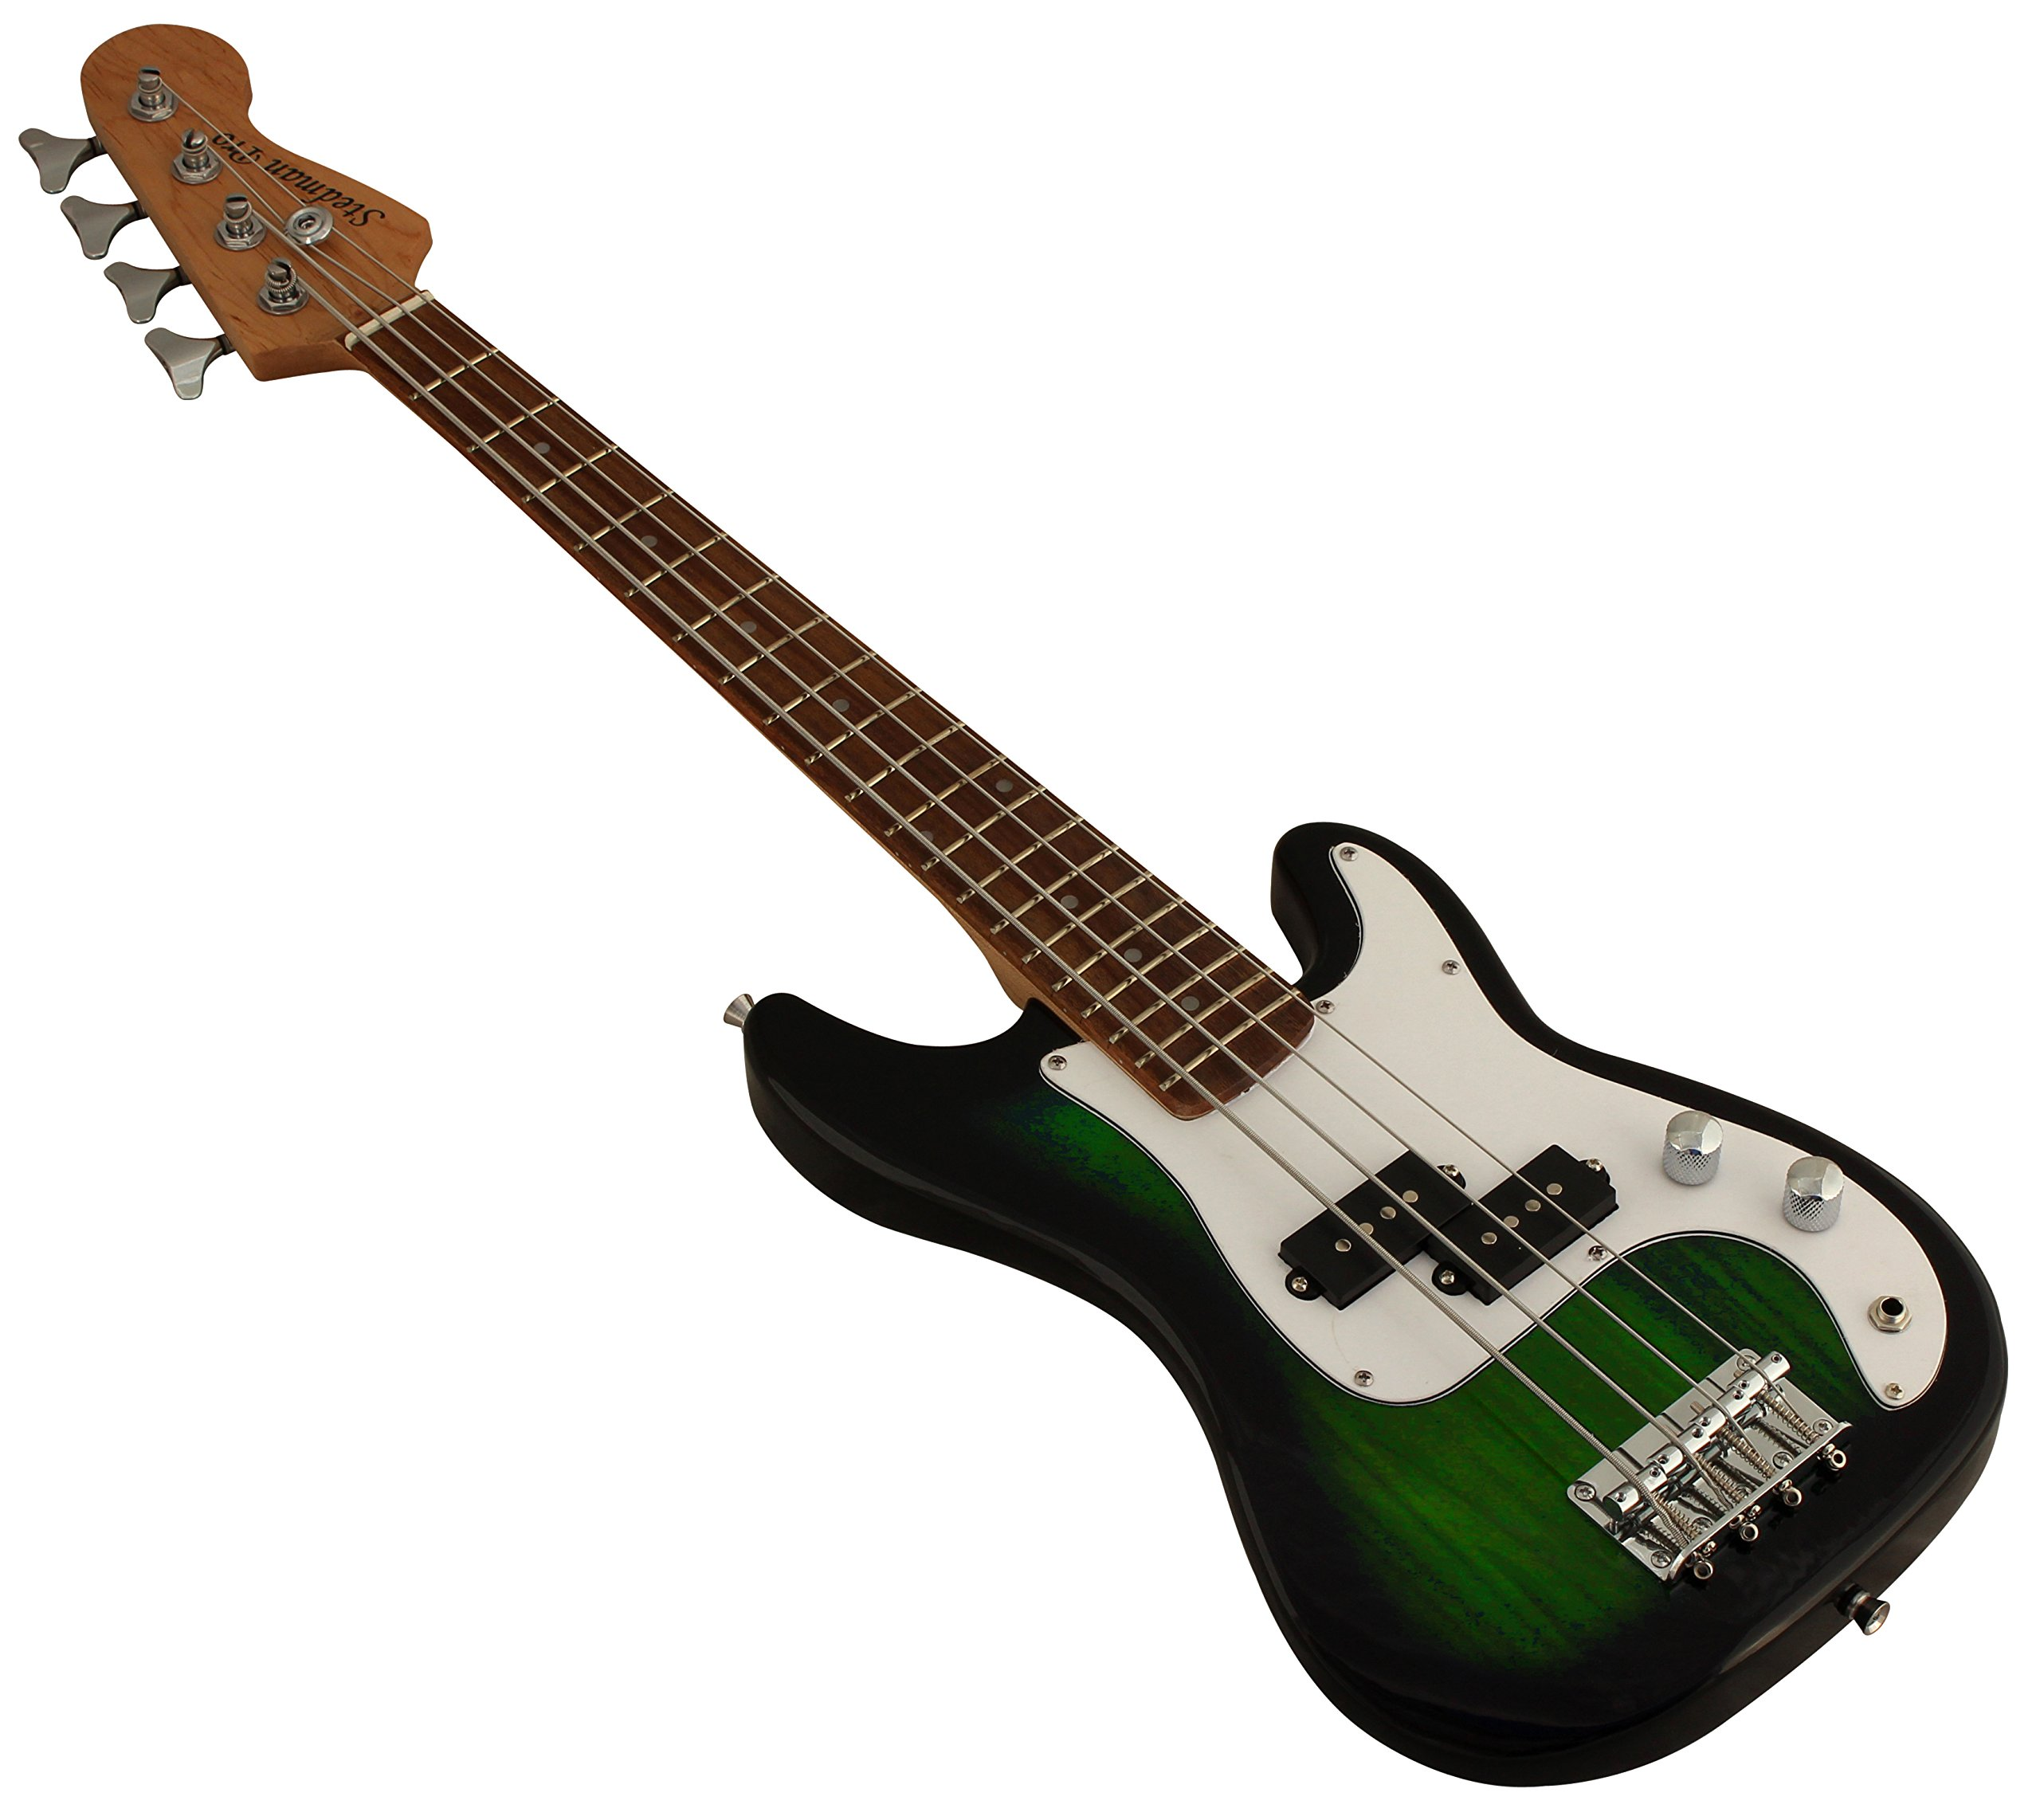 galleon electric bass guitar small scale 36 inch childrens bass with 5 watt amp. Black Bedroom Furniture Sets. Home Design Ideas